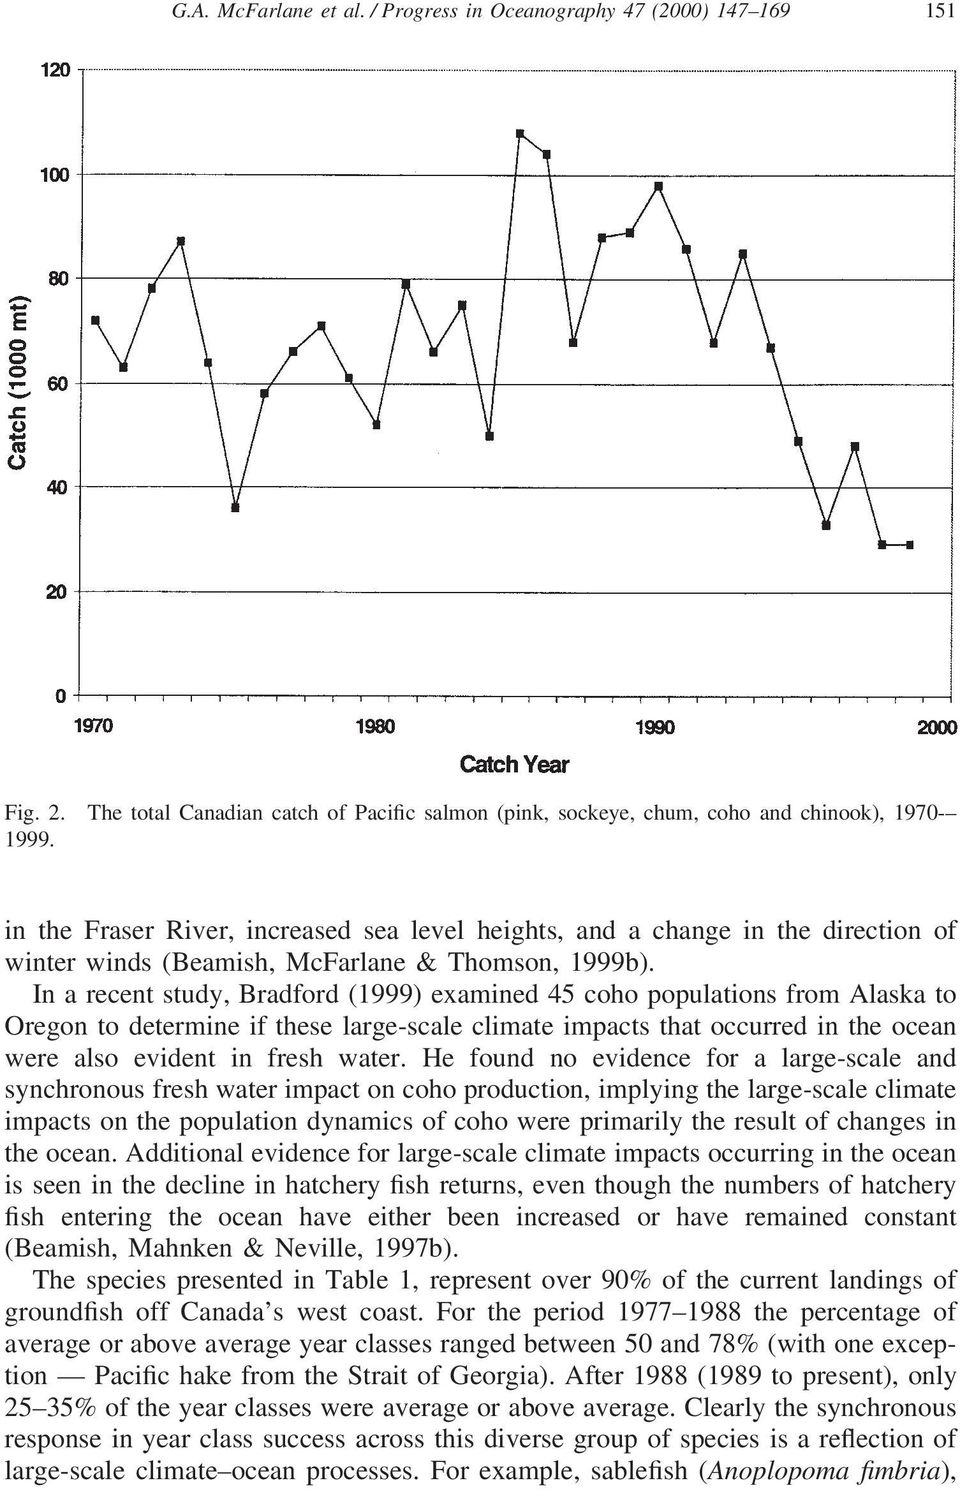 In a recent study, Bradford (1999) examined 45 coho populations from Alaska to Oregon to determine if these large-scale climate impacts that occurred in the ocean were also evident in fresh water.